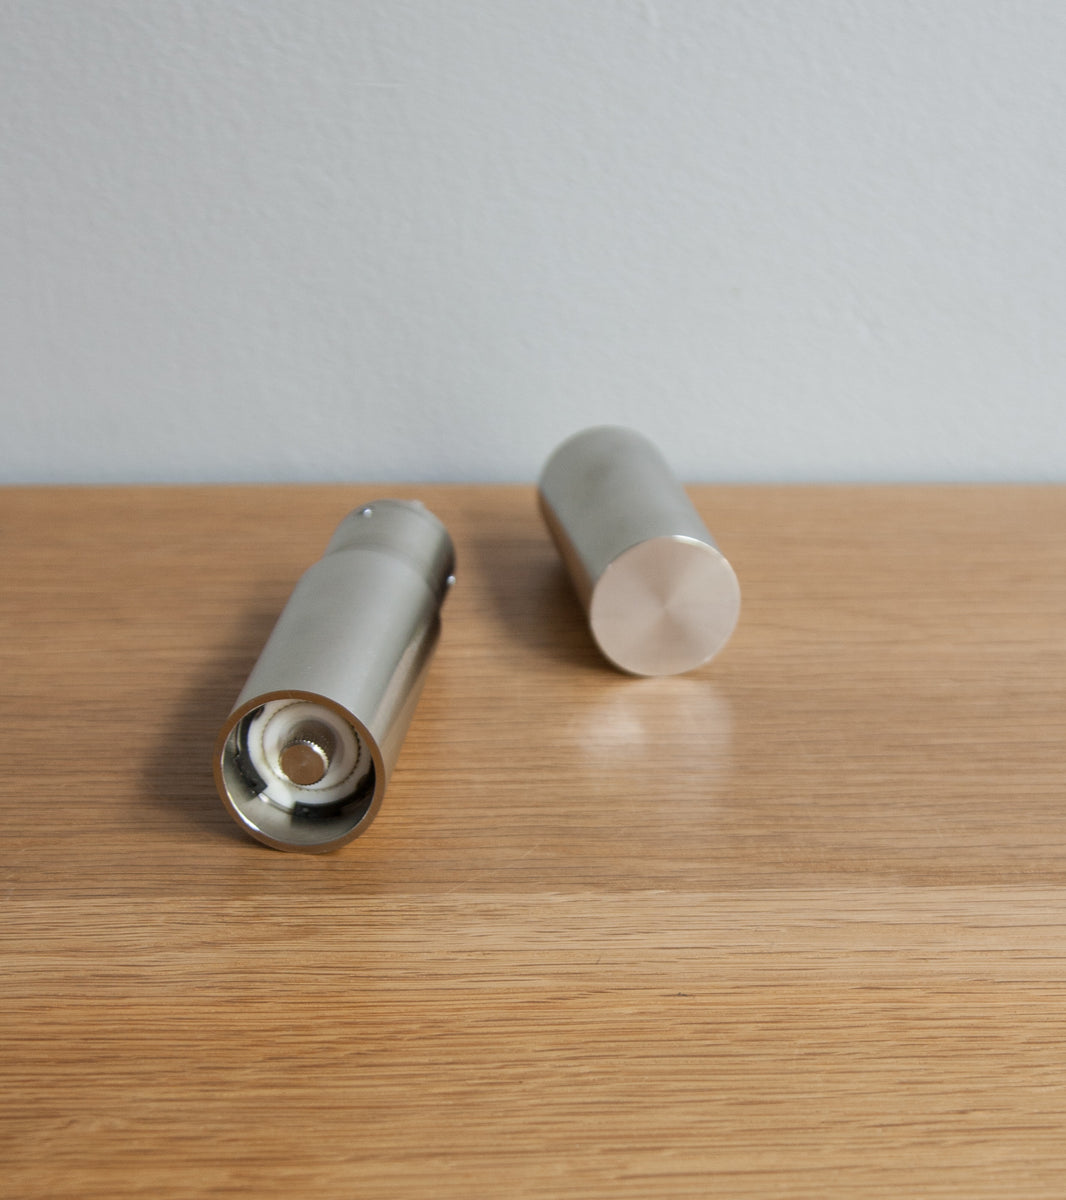 Italic Mill - Matt Nickel Plated Michael Anastassiades & Carl Auböck - Image 10